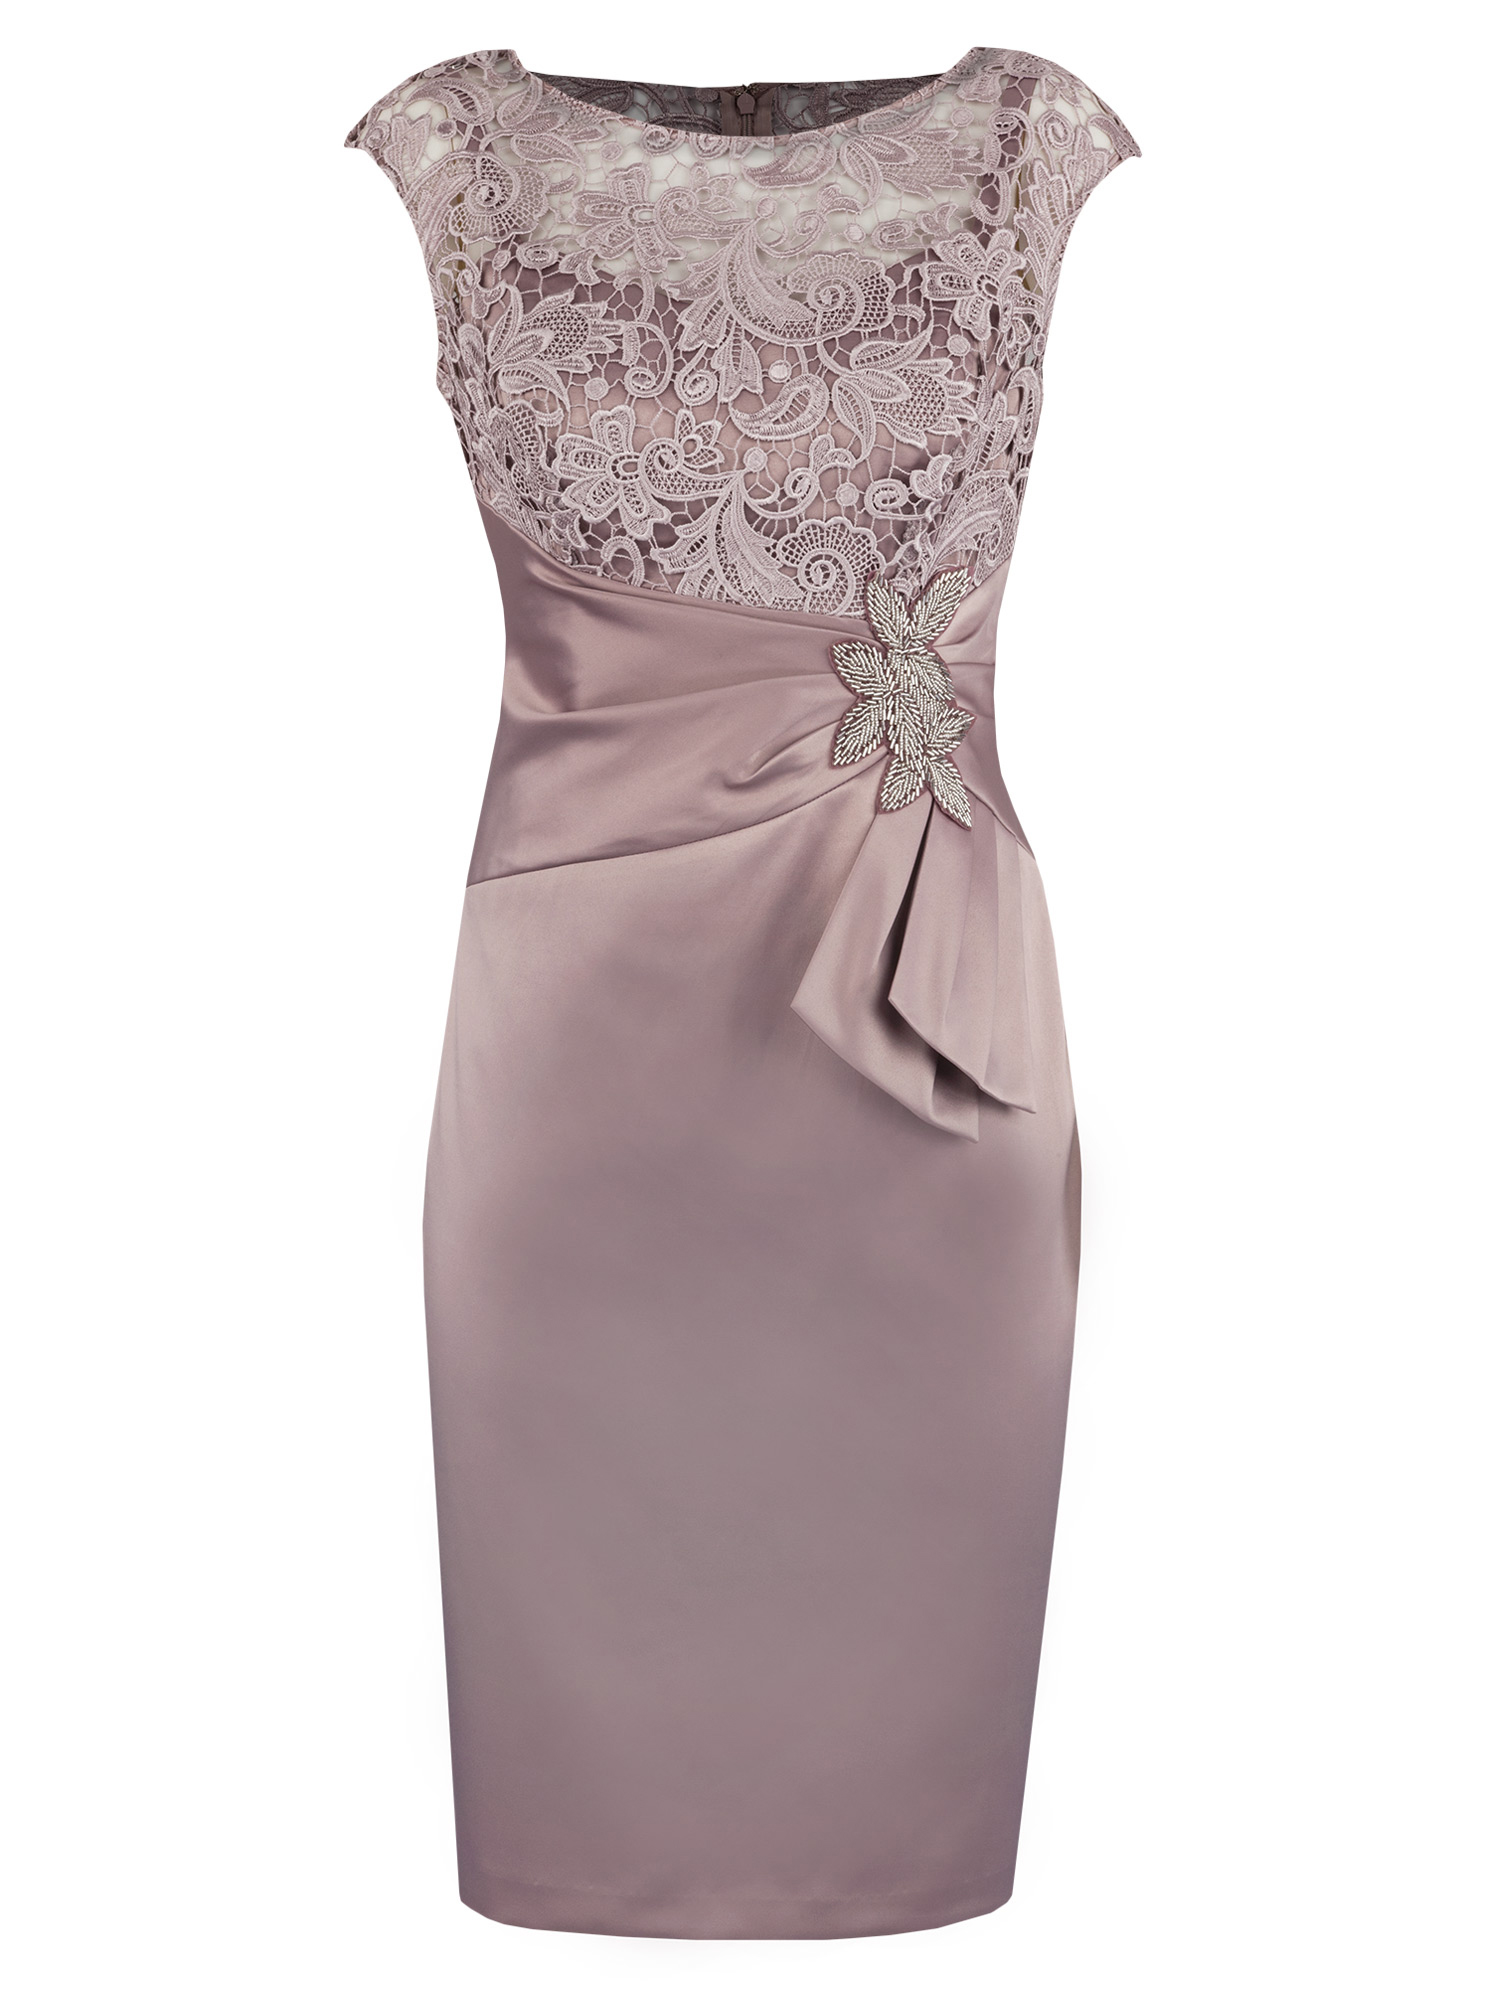 Sheath Bateau Short Champagne Satin Mother of The Bride Dress with Lace Beading фото